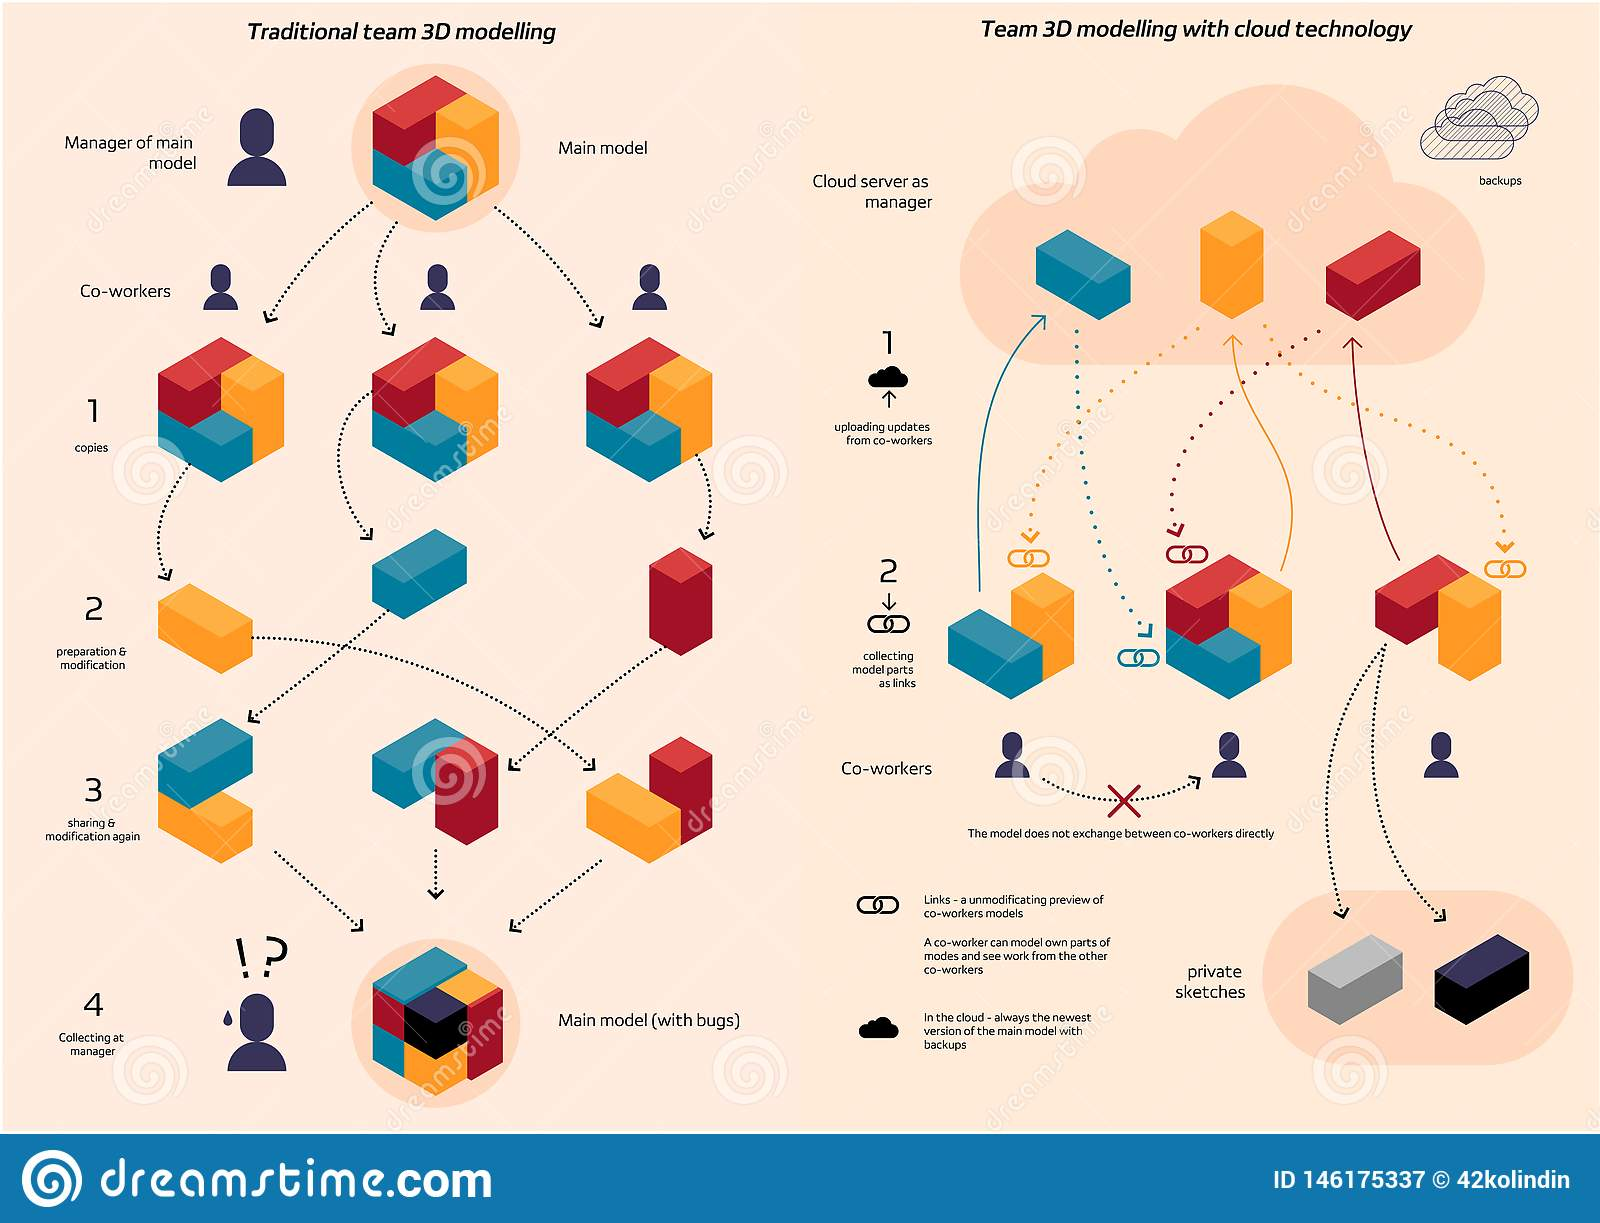 Traditional team coworking vs Cloud Data Sources in 3d modelling